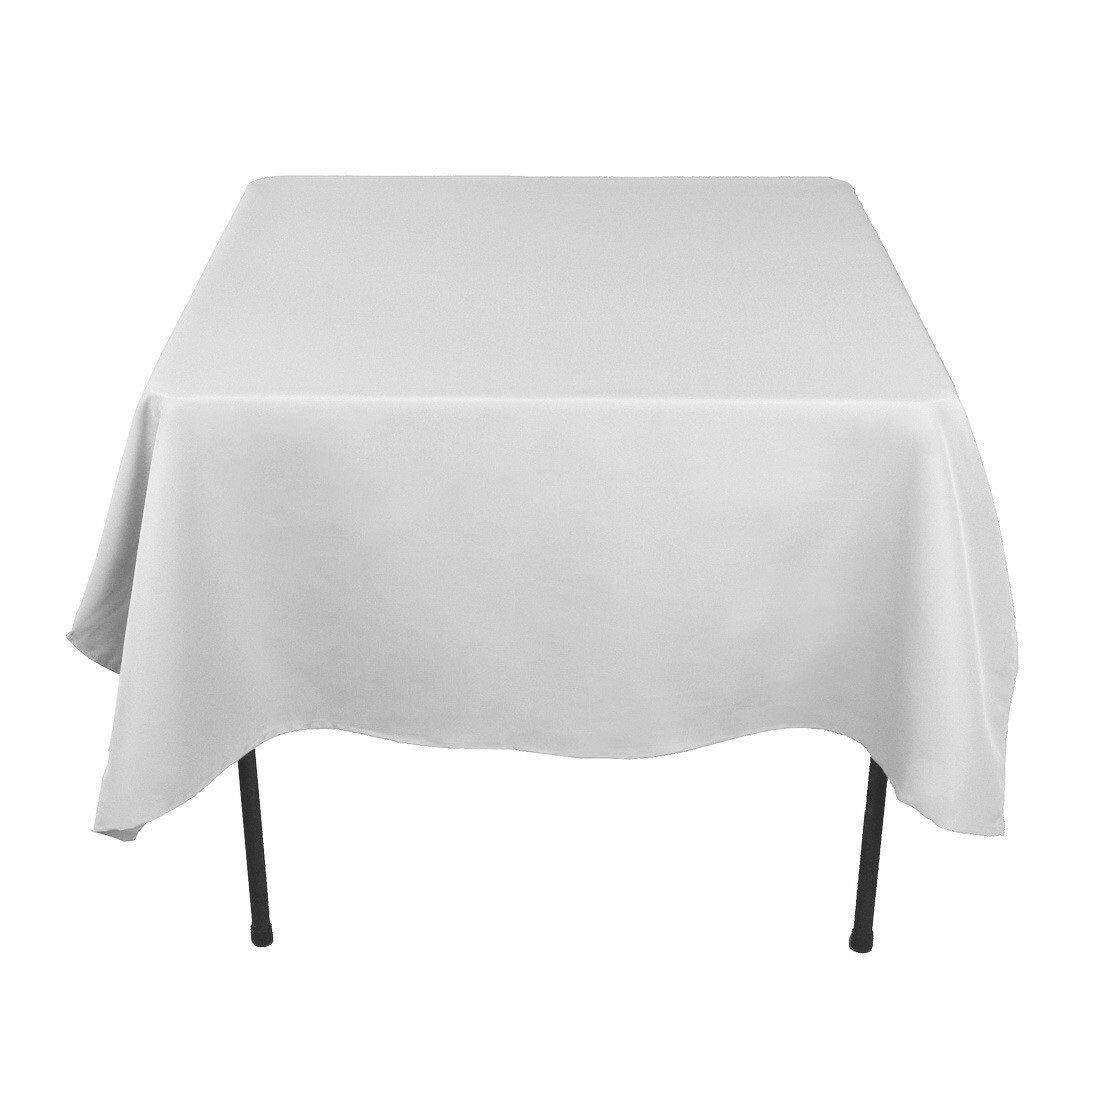 """54"""" x 54"""" Square Seamless Tablecloth For Wedding Restaurant"""